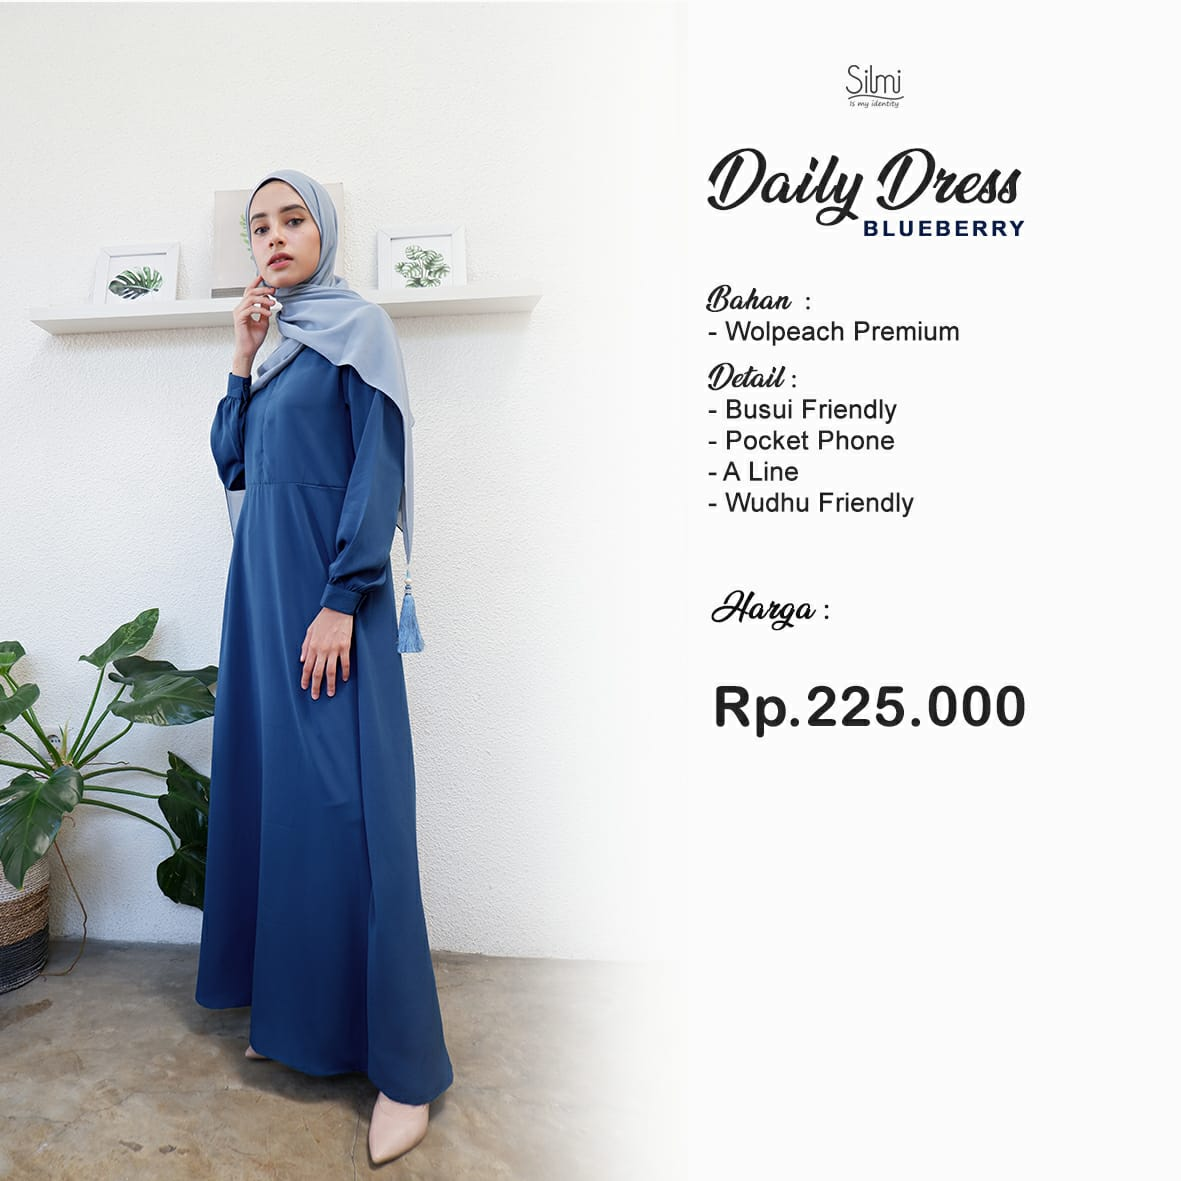 Silmi Daily Dress Wolpeach Blueberry